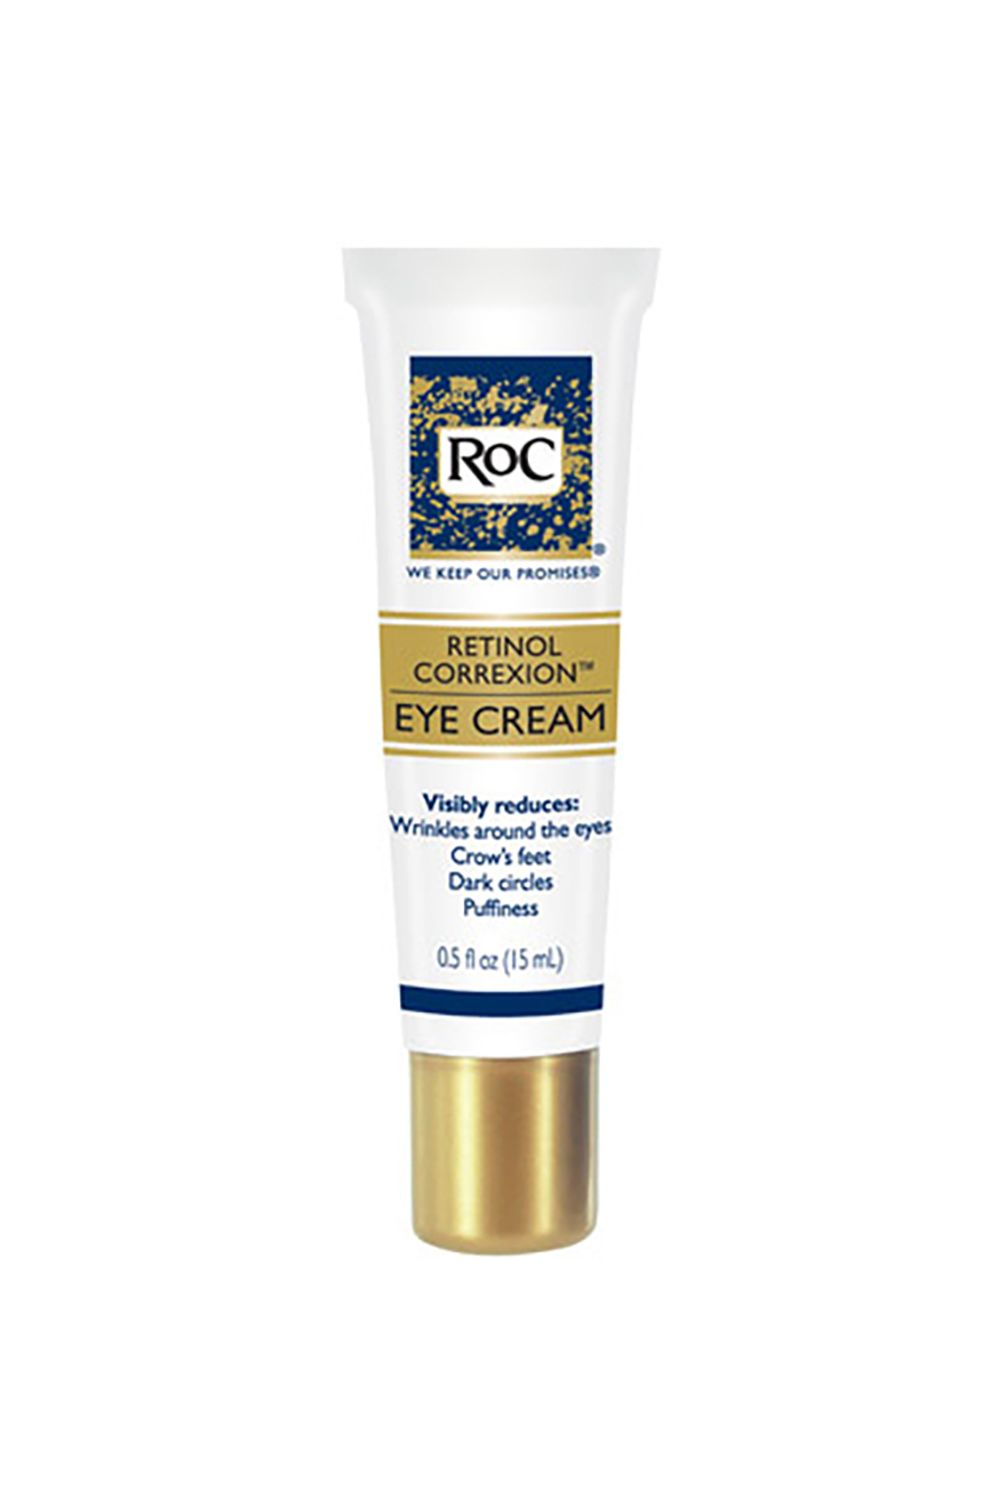 "<p>The formula? Top notch—fighting crow's feet, dark circles, and puffiness. The packaging? Even better—the hard/non-puncturable exterior is perfect for throwing in a bag, throwing in a bin...you get the gist. </p><p>ROC Eye Cream, $25; <a href=""http://www.ulta.com/eye-cream?productId=prod2112112"" target=""_blank"">Ulta.com</a></p>"